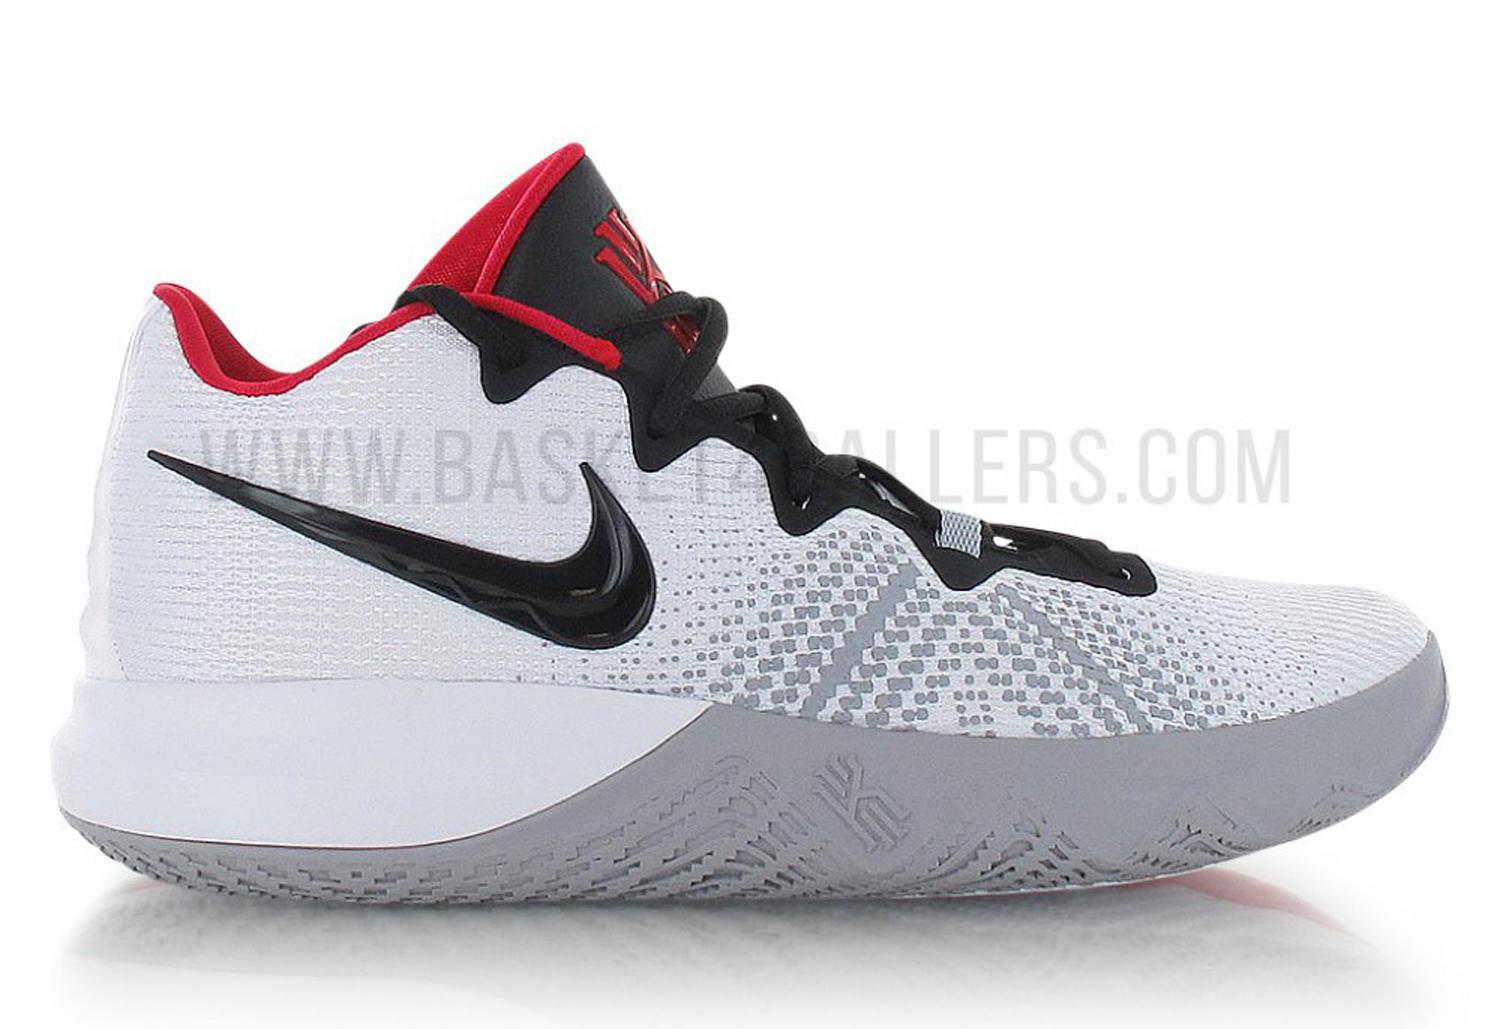 The Nike Kyrie Flytrap Appears in White